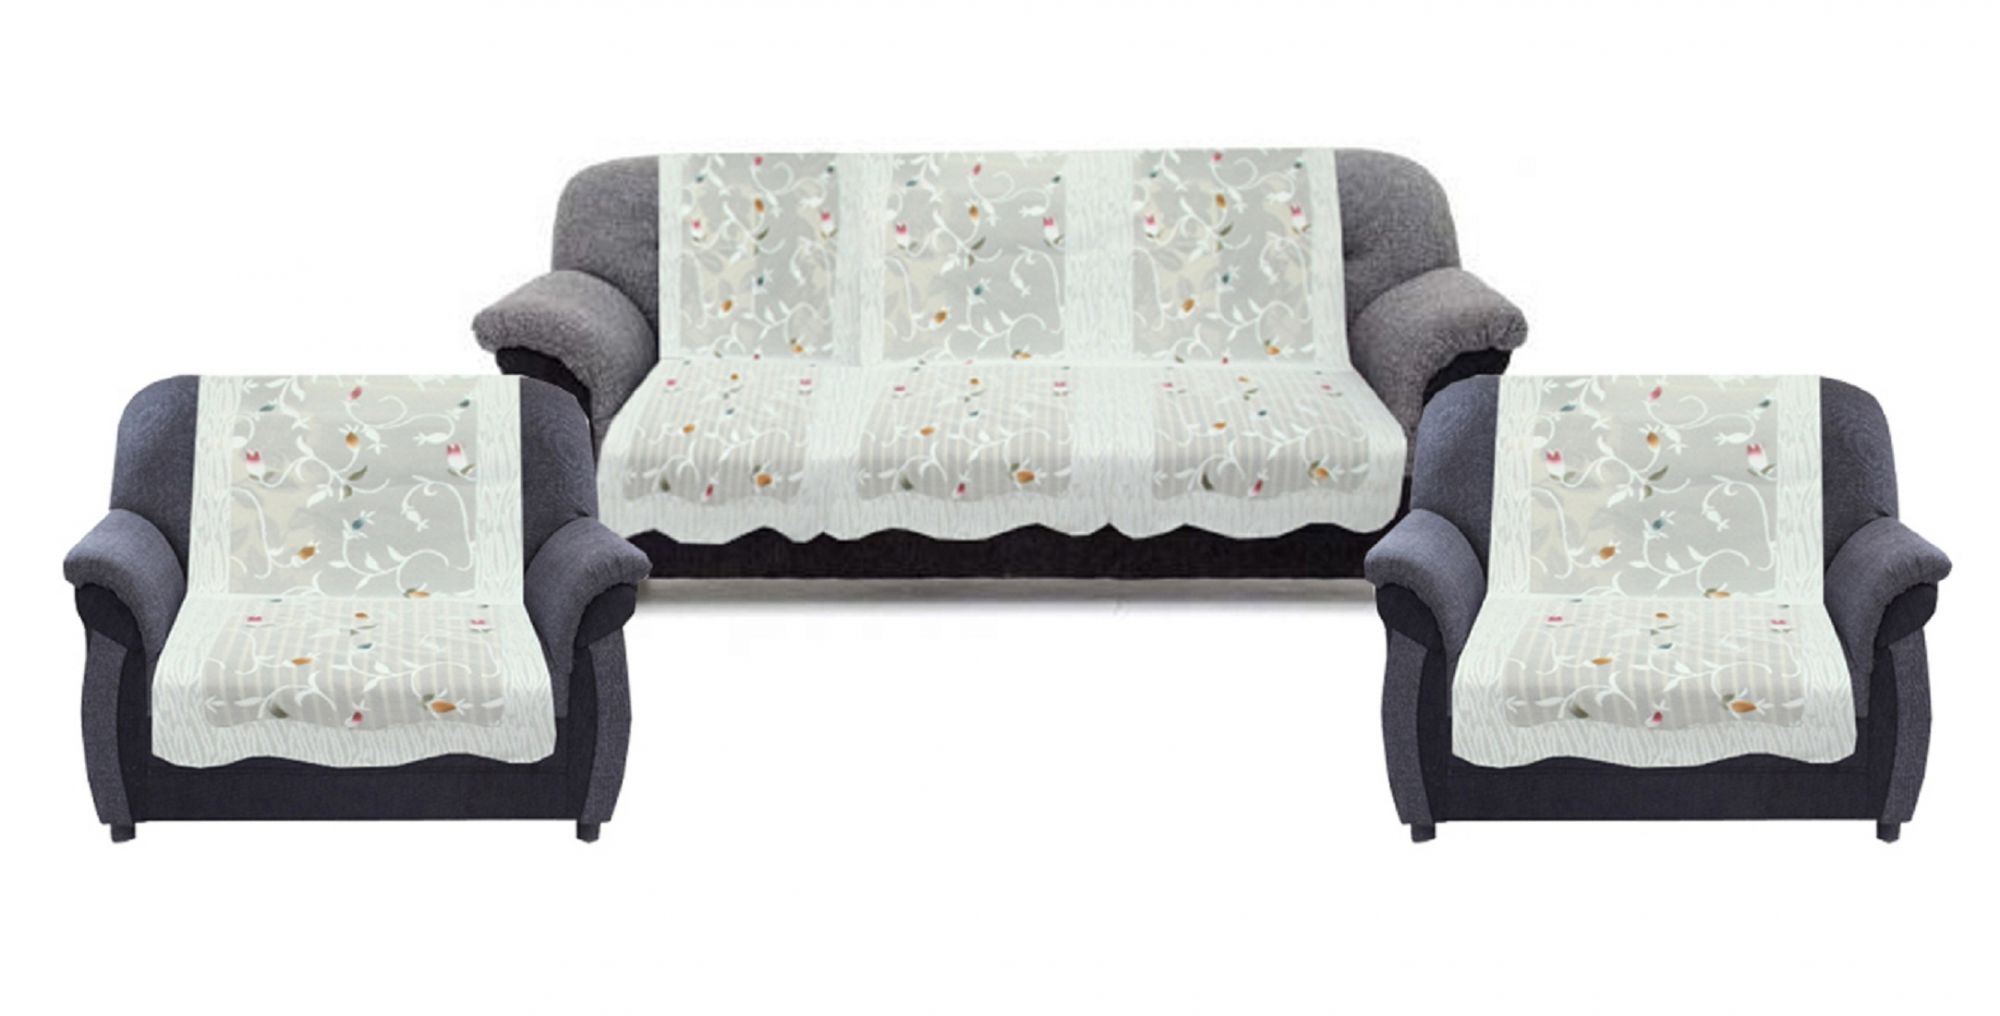 sofa seat cover design adirondack bed kuber industries 6 pieces white leaf and